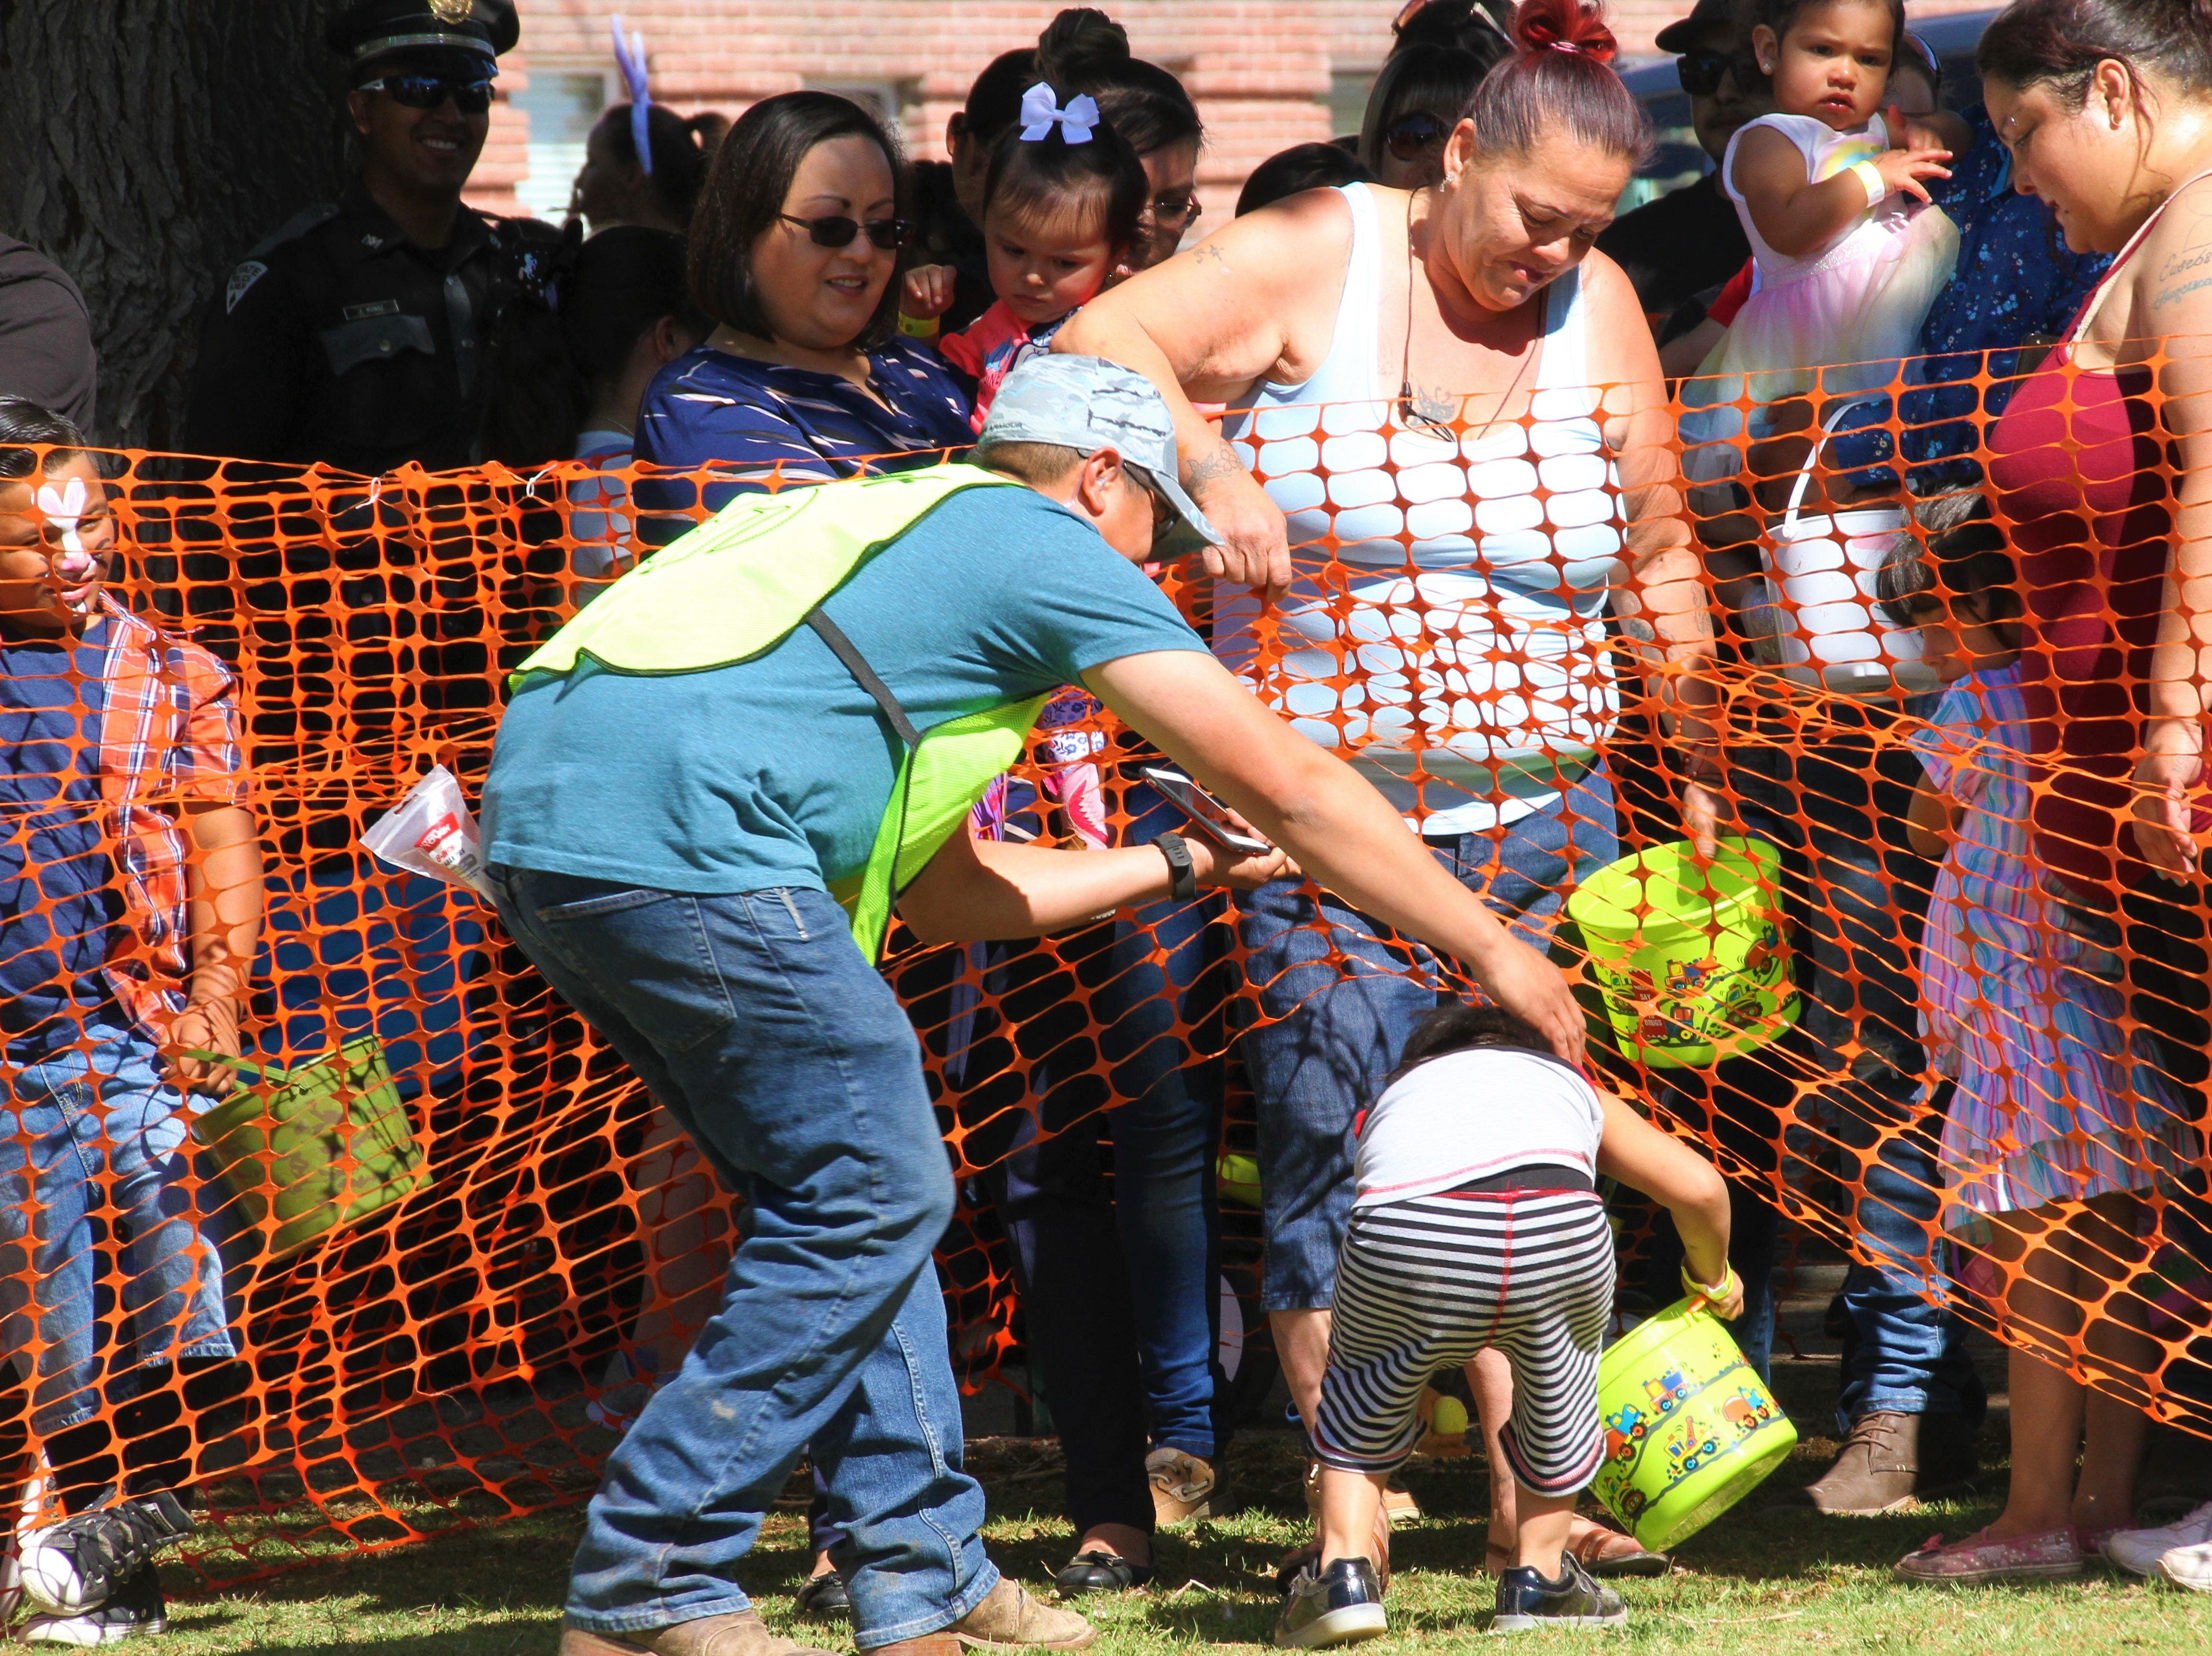 Jeremiah Granillo, 2, sneaking off to get first dibs on Easter eggs. Here, Deming First Assembly of God volunteer escorts Jeremiah back to the line with grandma Sandra.